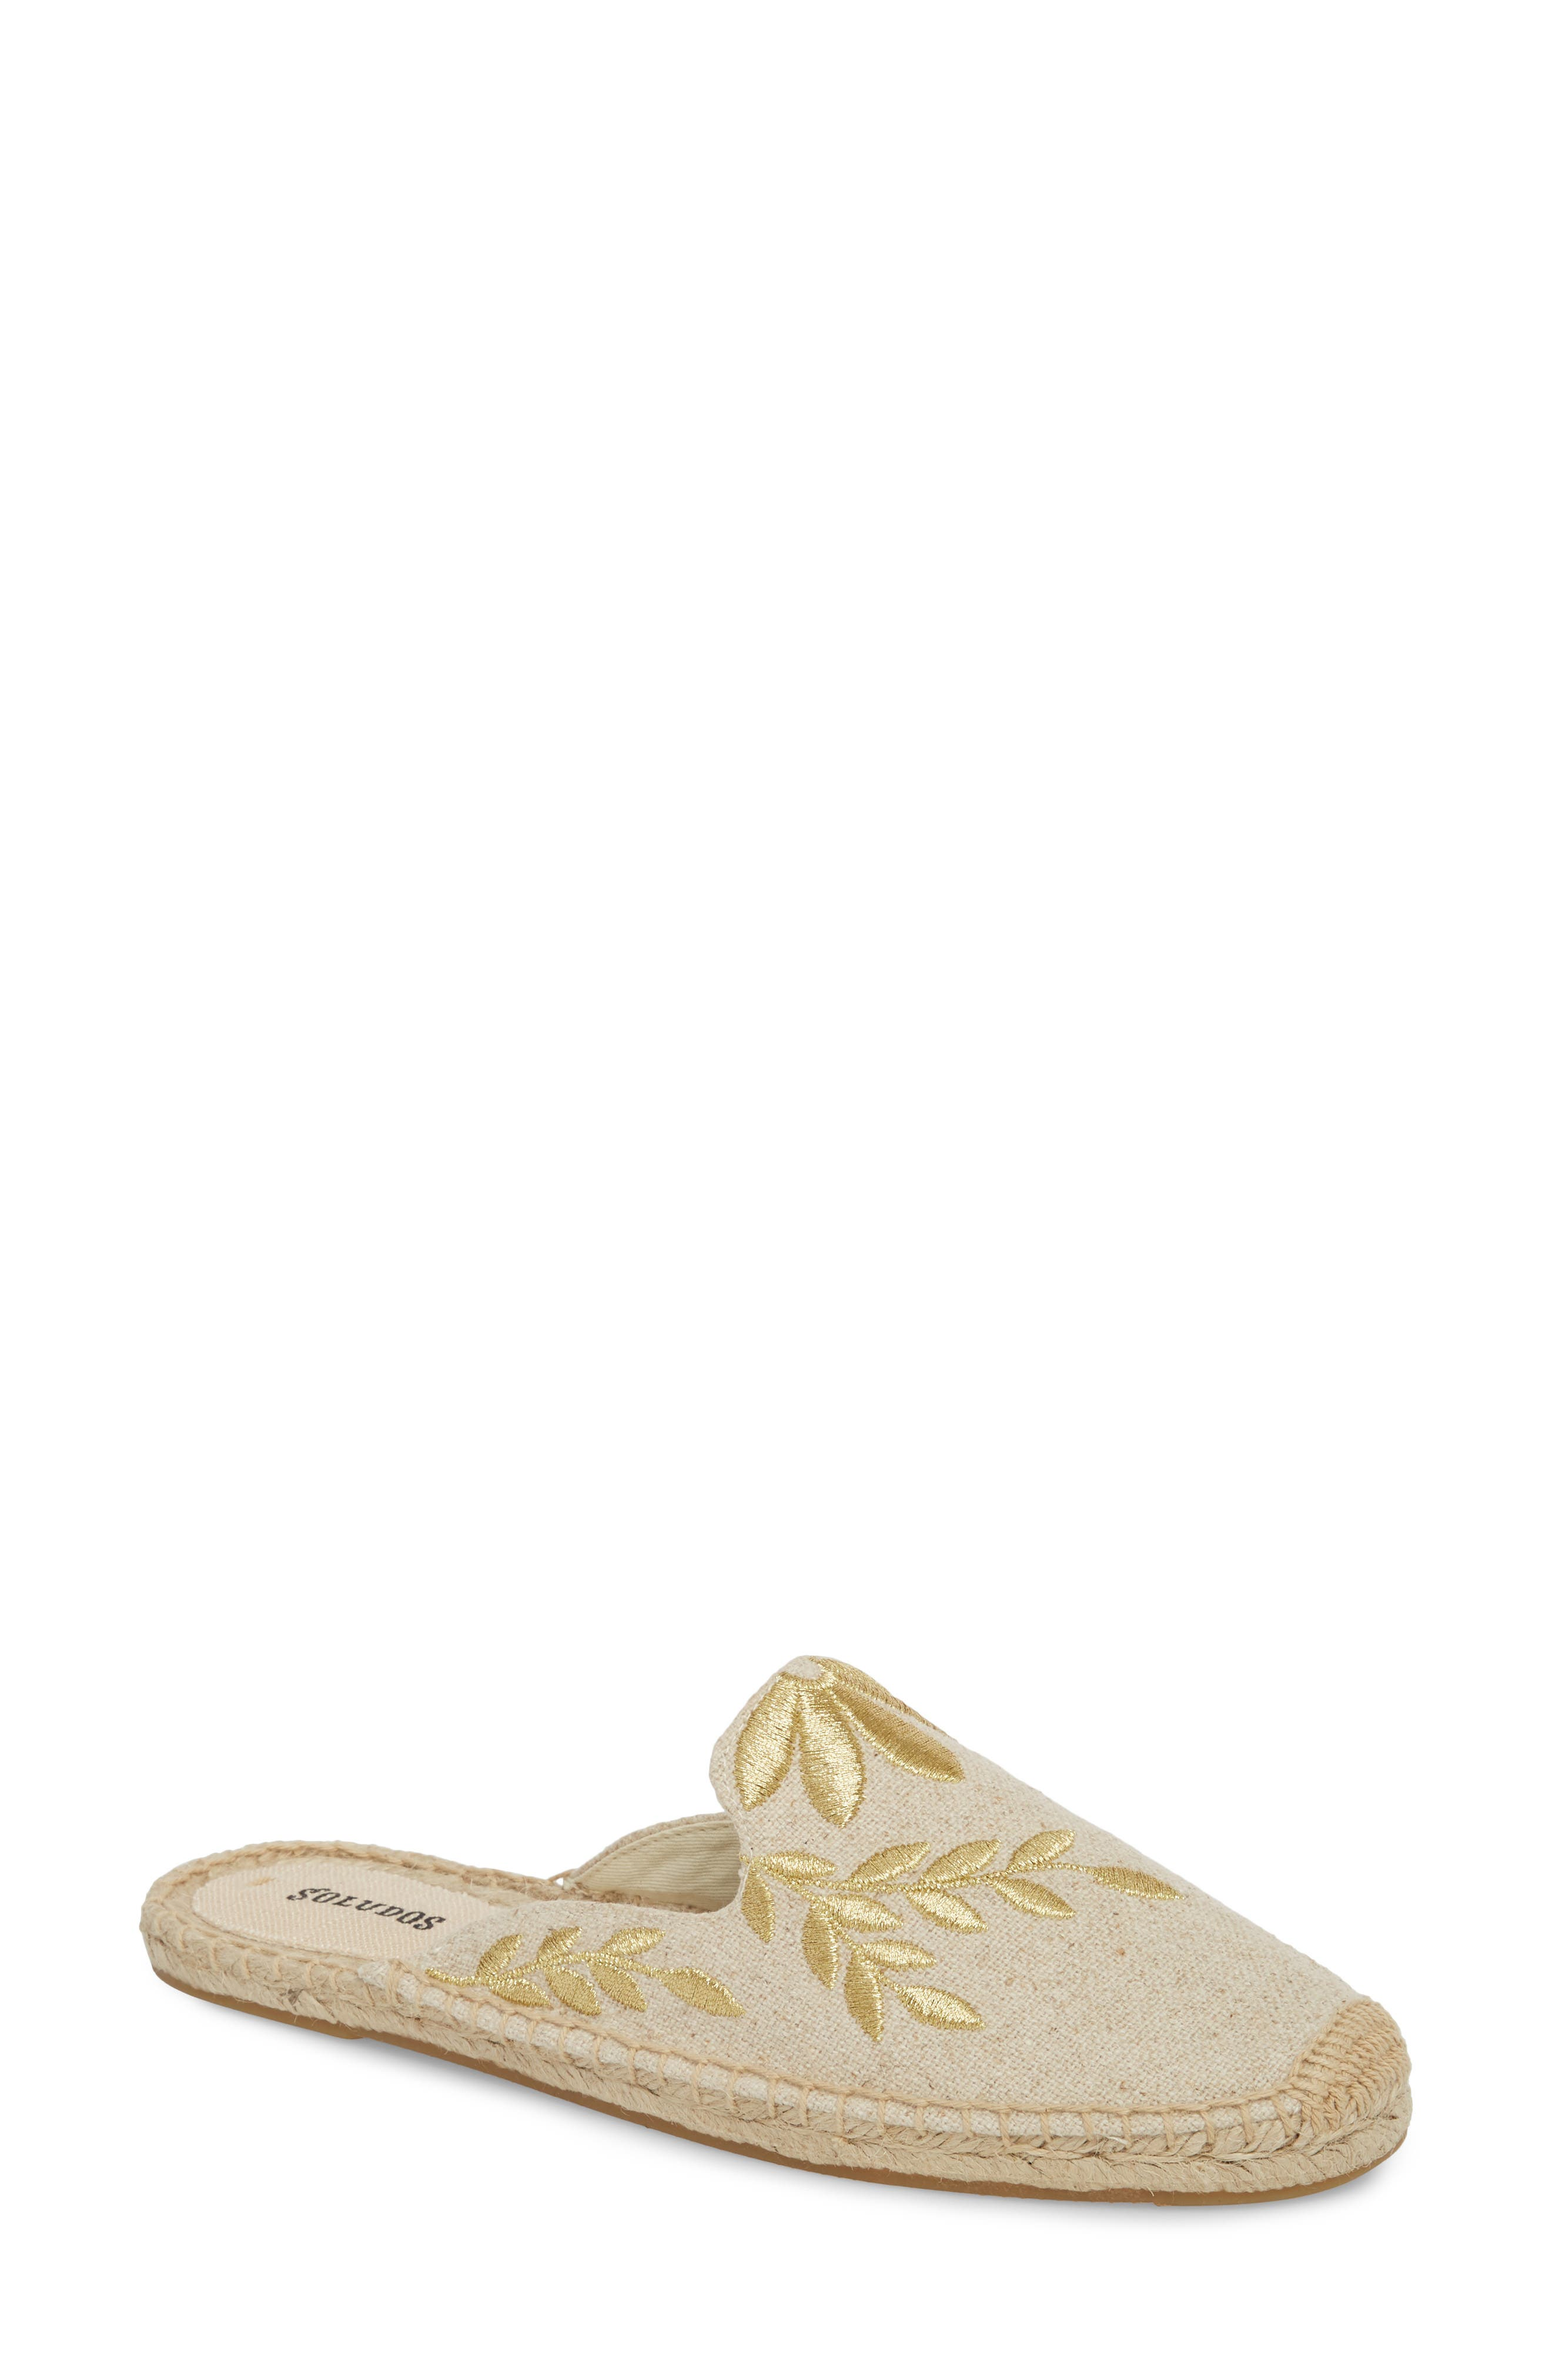 Leaf Embroidered Loafer Mule,                             Main thumbnail 1, color,                             Sand/ Metallic